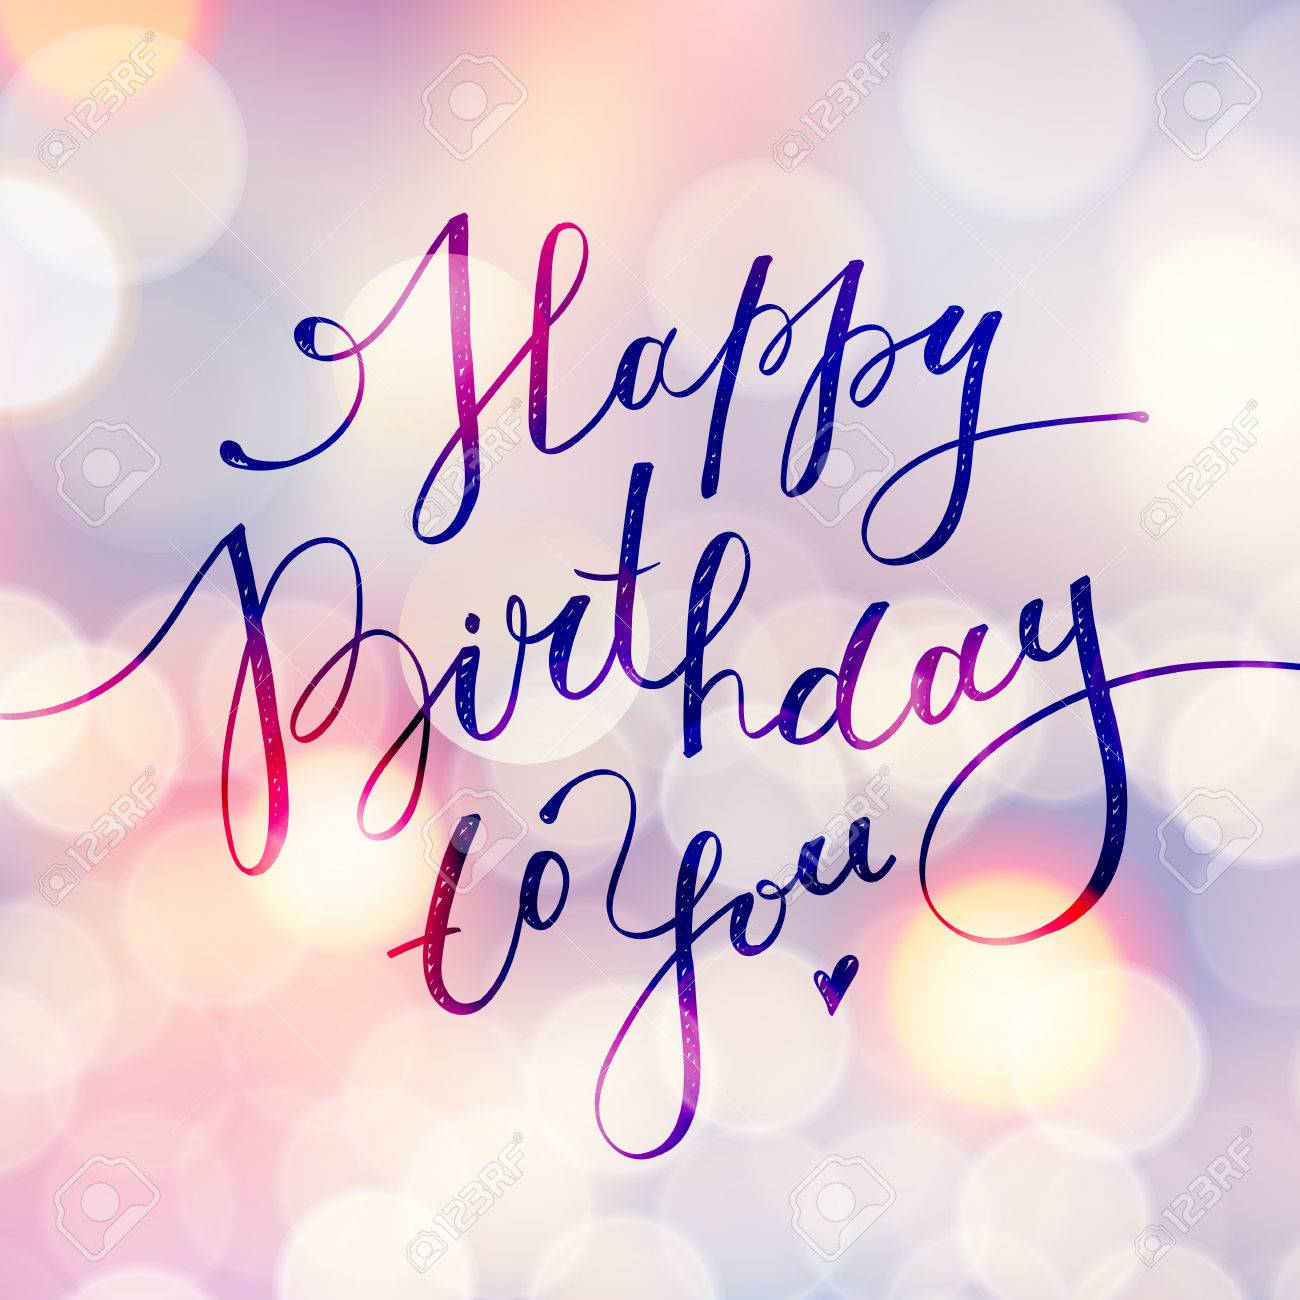 Happy Birthday To You Vector Lettering Greeting Card Design Royalty Free Cliparts Vectors And Stock Illustration Image 56175645